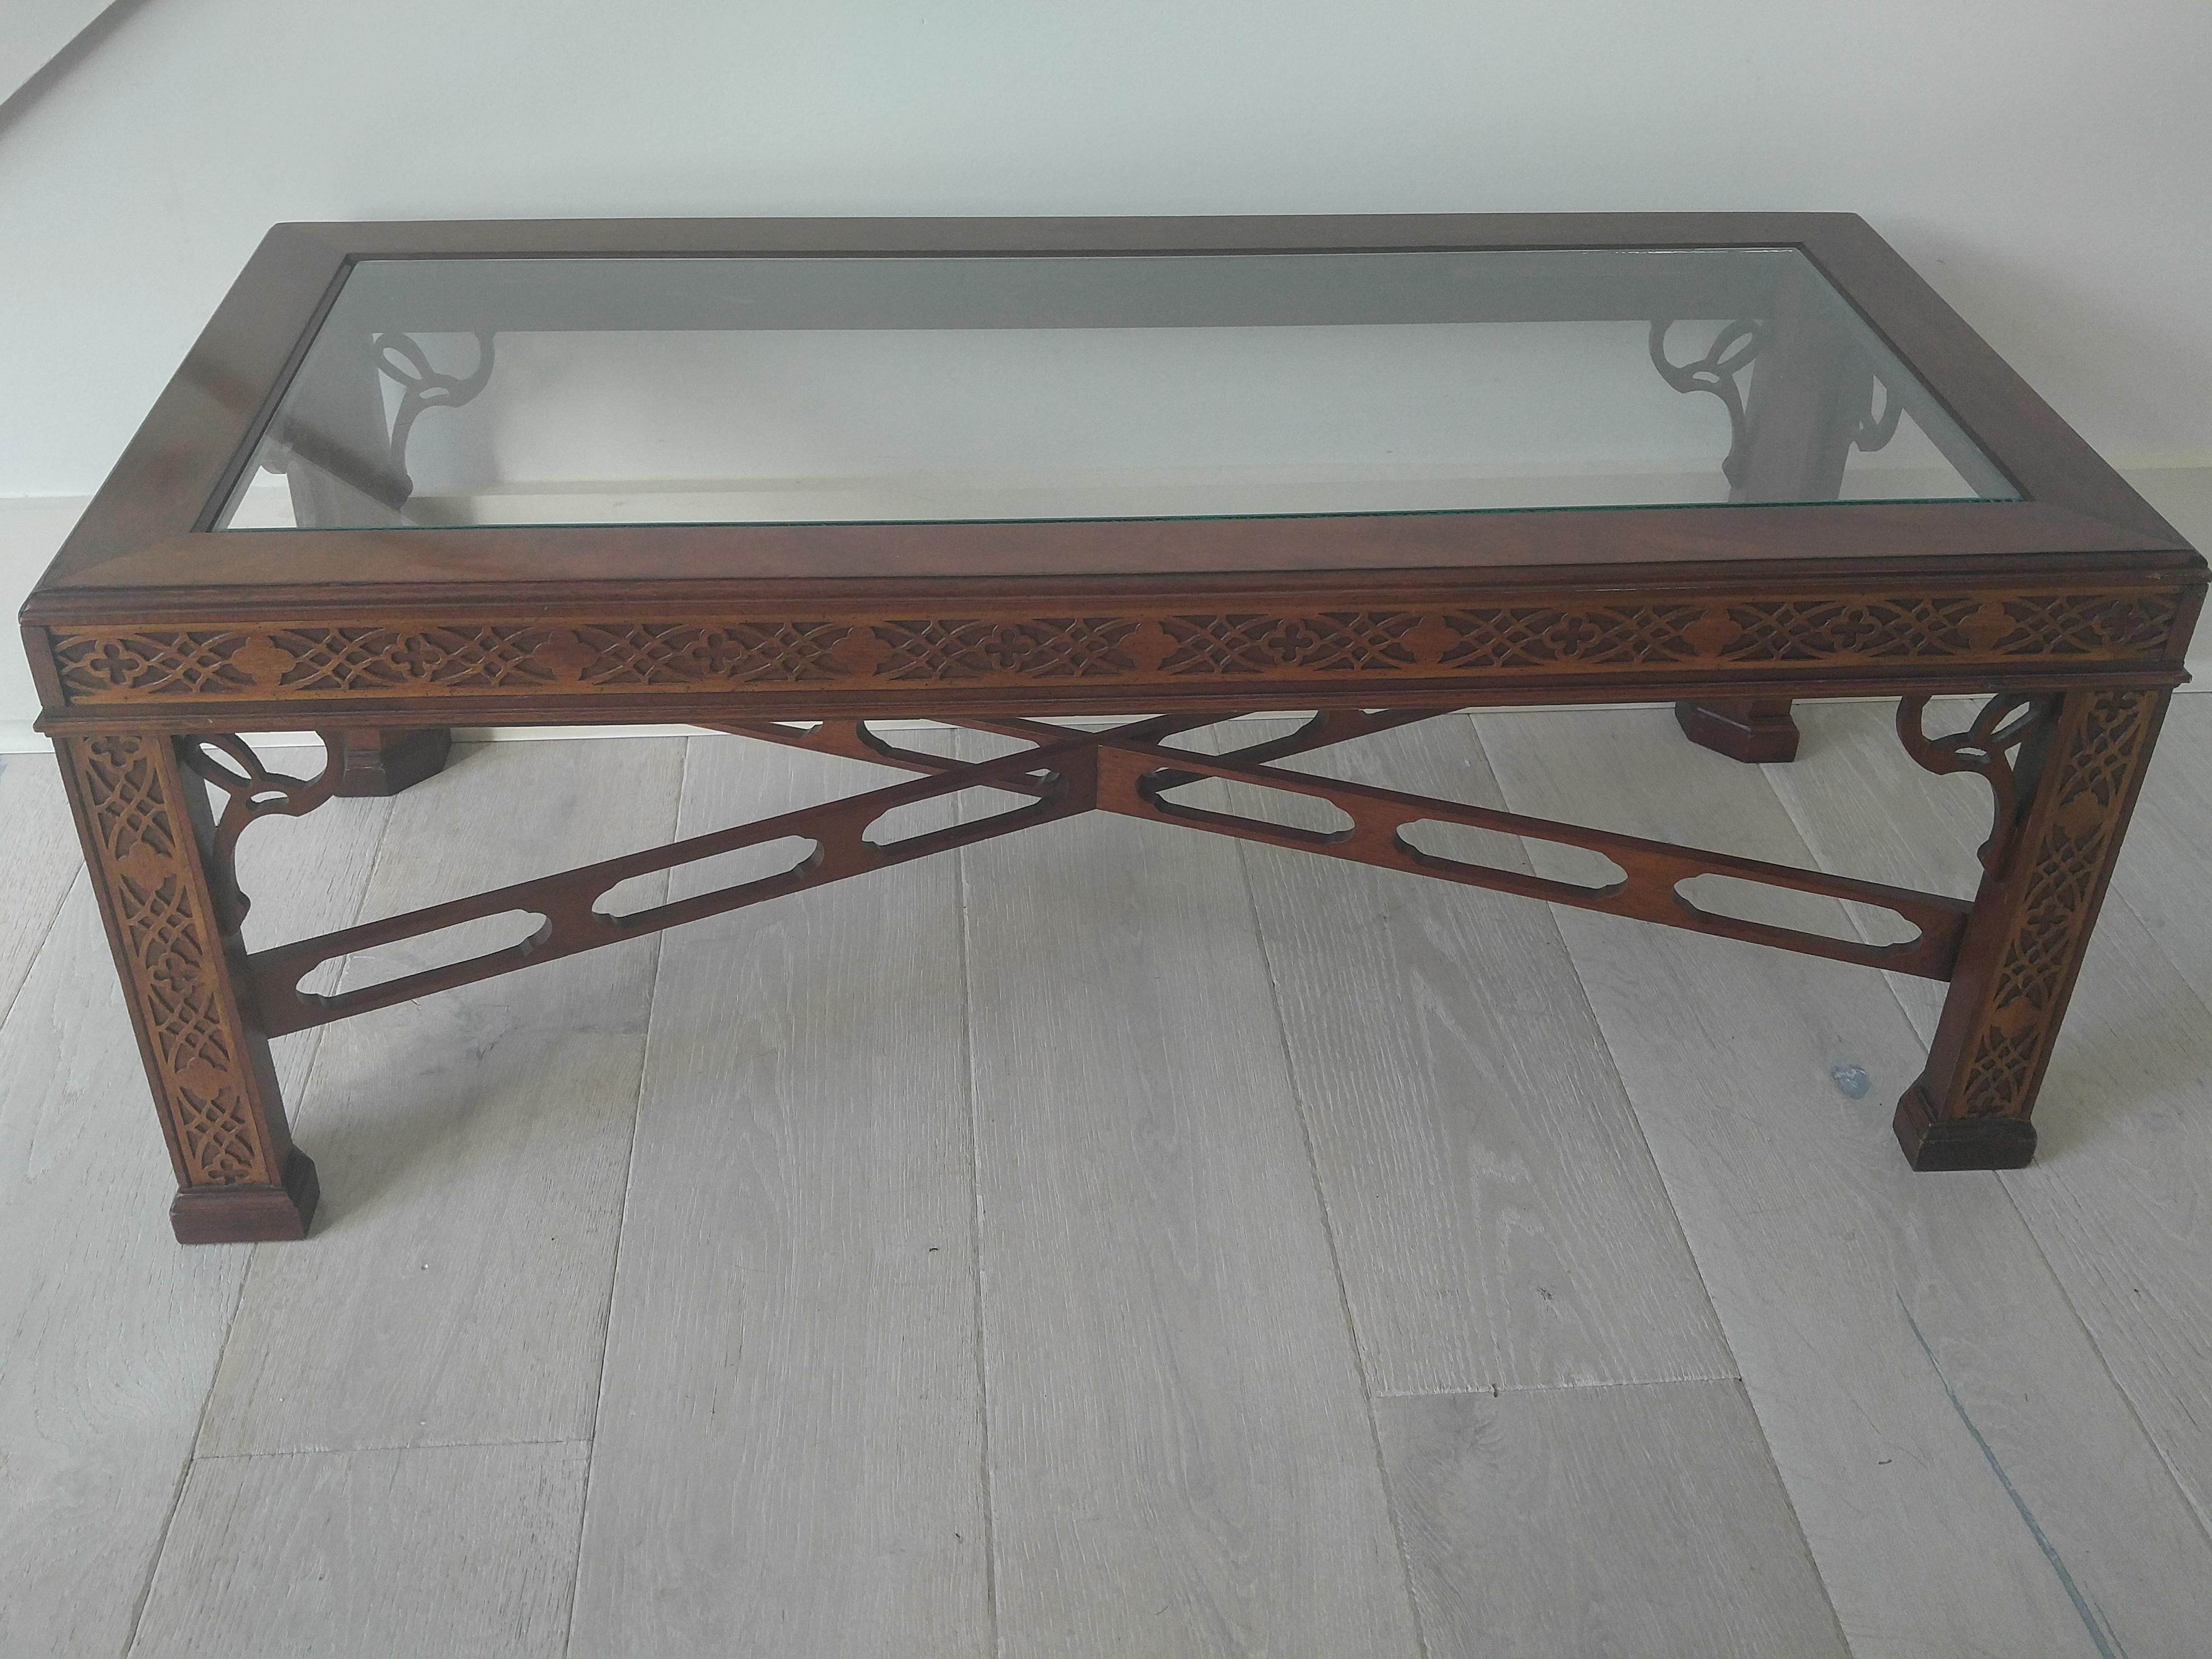 Merveilleux Thomasville Blind Fretwork Coffee Table For Sale   Image 9 Of 10